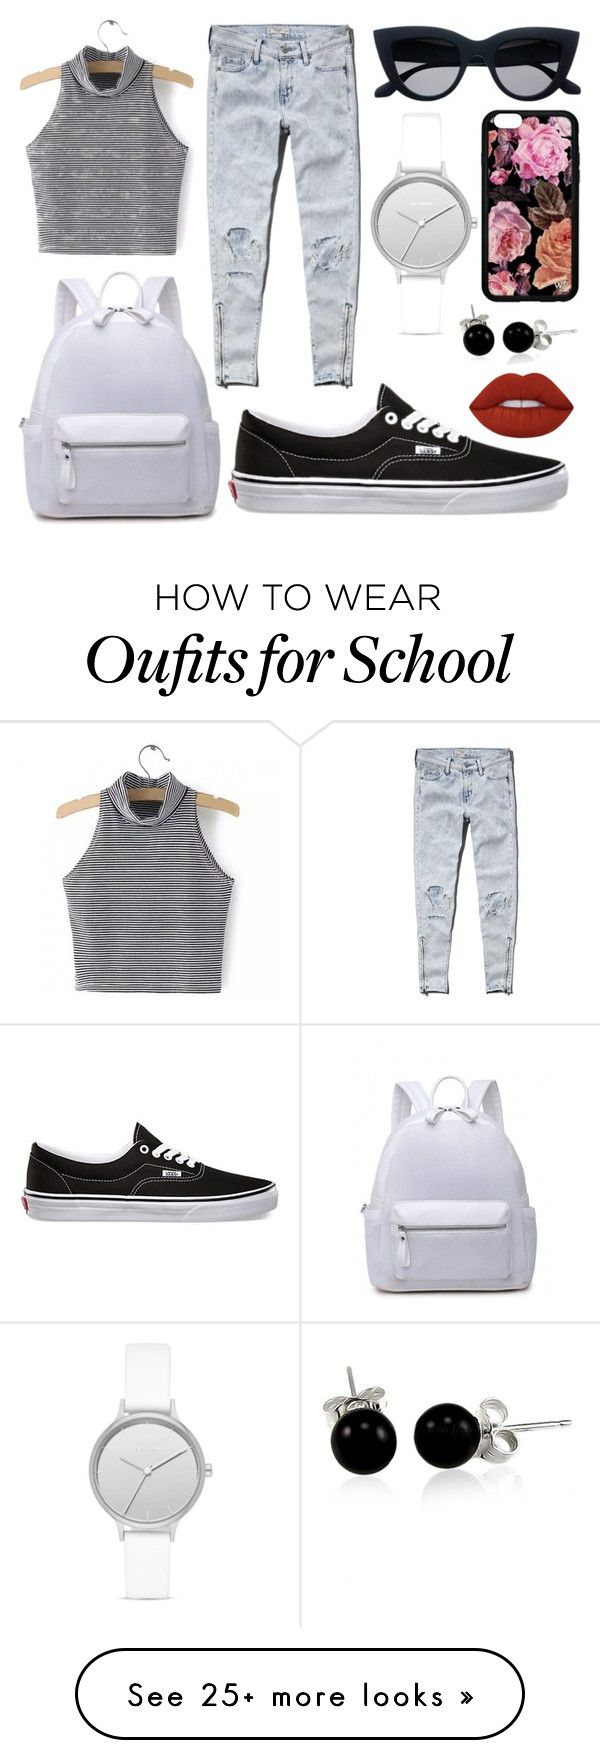 """School Day"" by susanna-trad on Polyvore featuring Abercrombie & Fitch, Vans, Skagen, Bling Jewelry and Lime Crime"